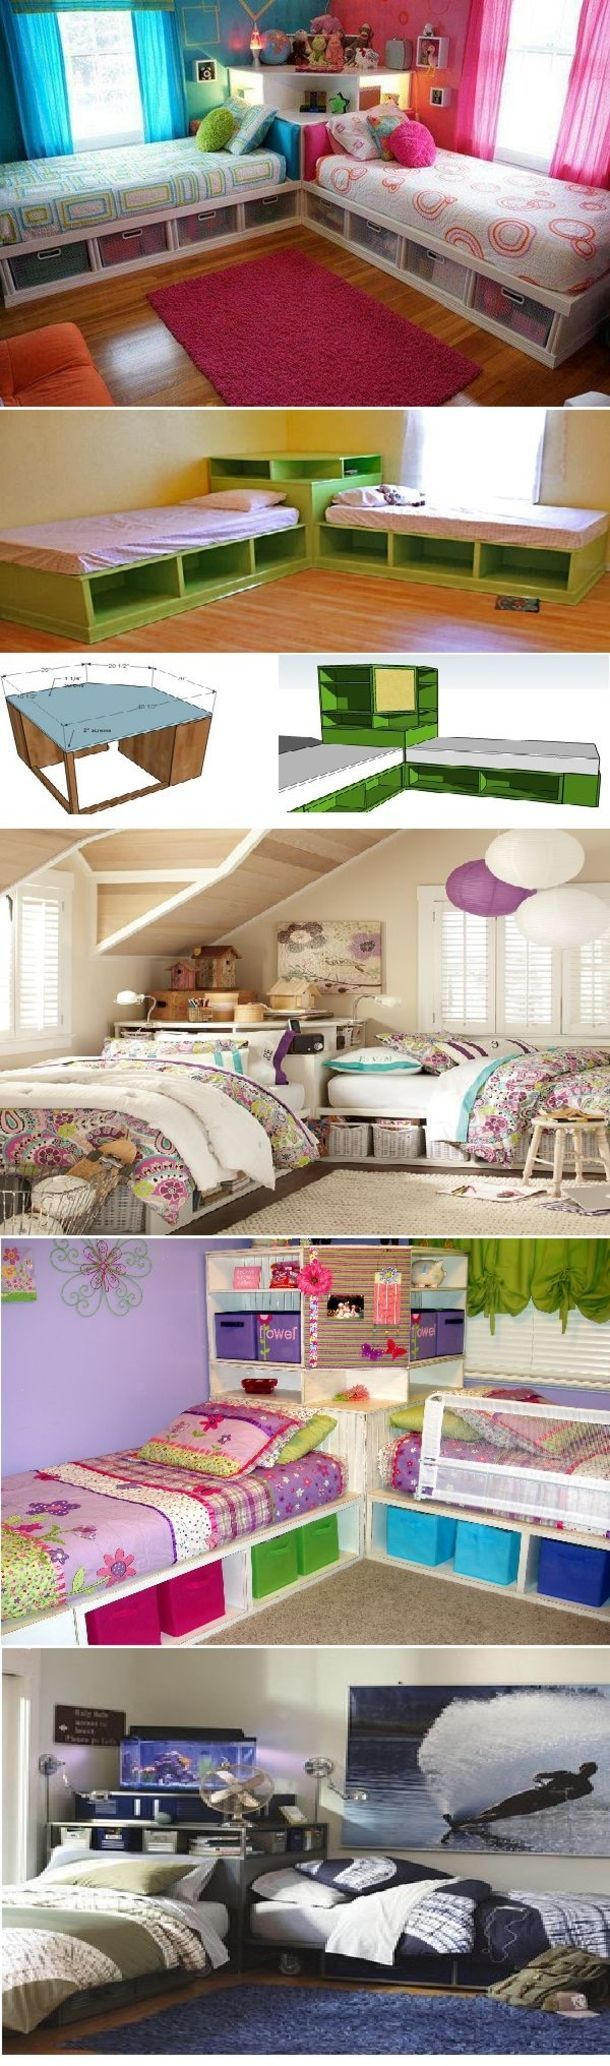 Best Kids Bedroom Ever 1031 best kid bedrooms images on pinterest | room, home and